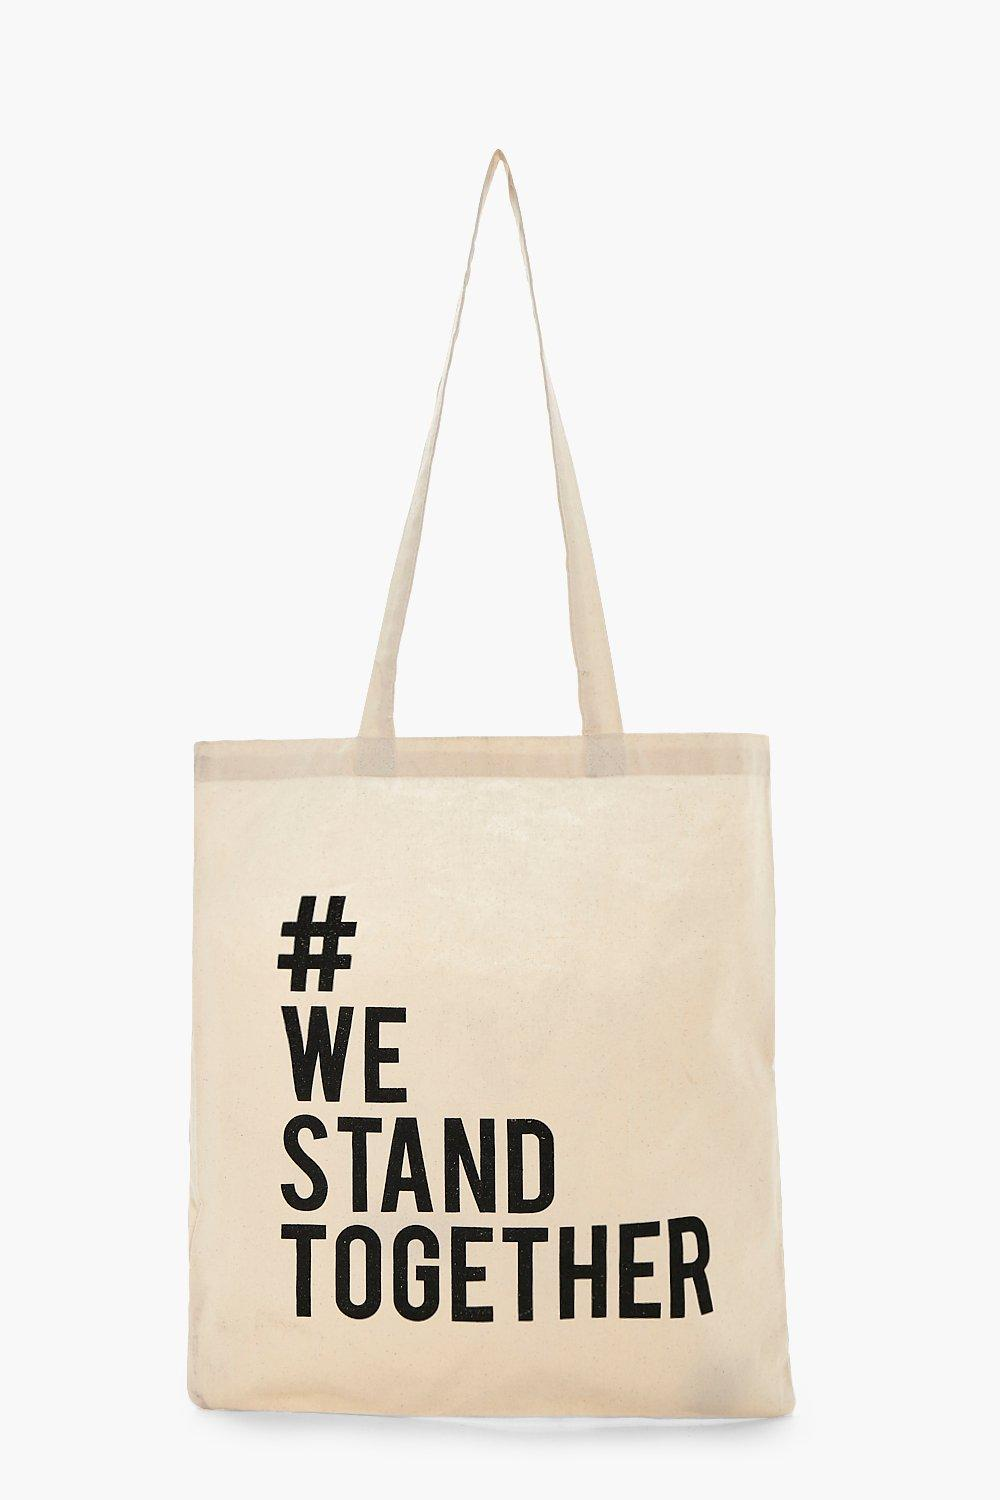 Bag - Stand Together - cream - Charity Bag - Stand